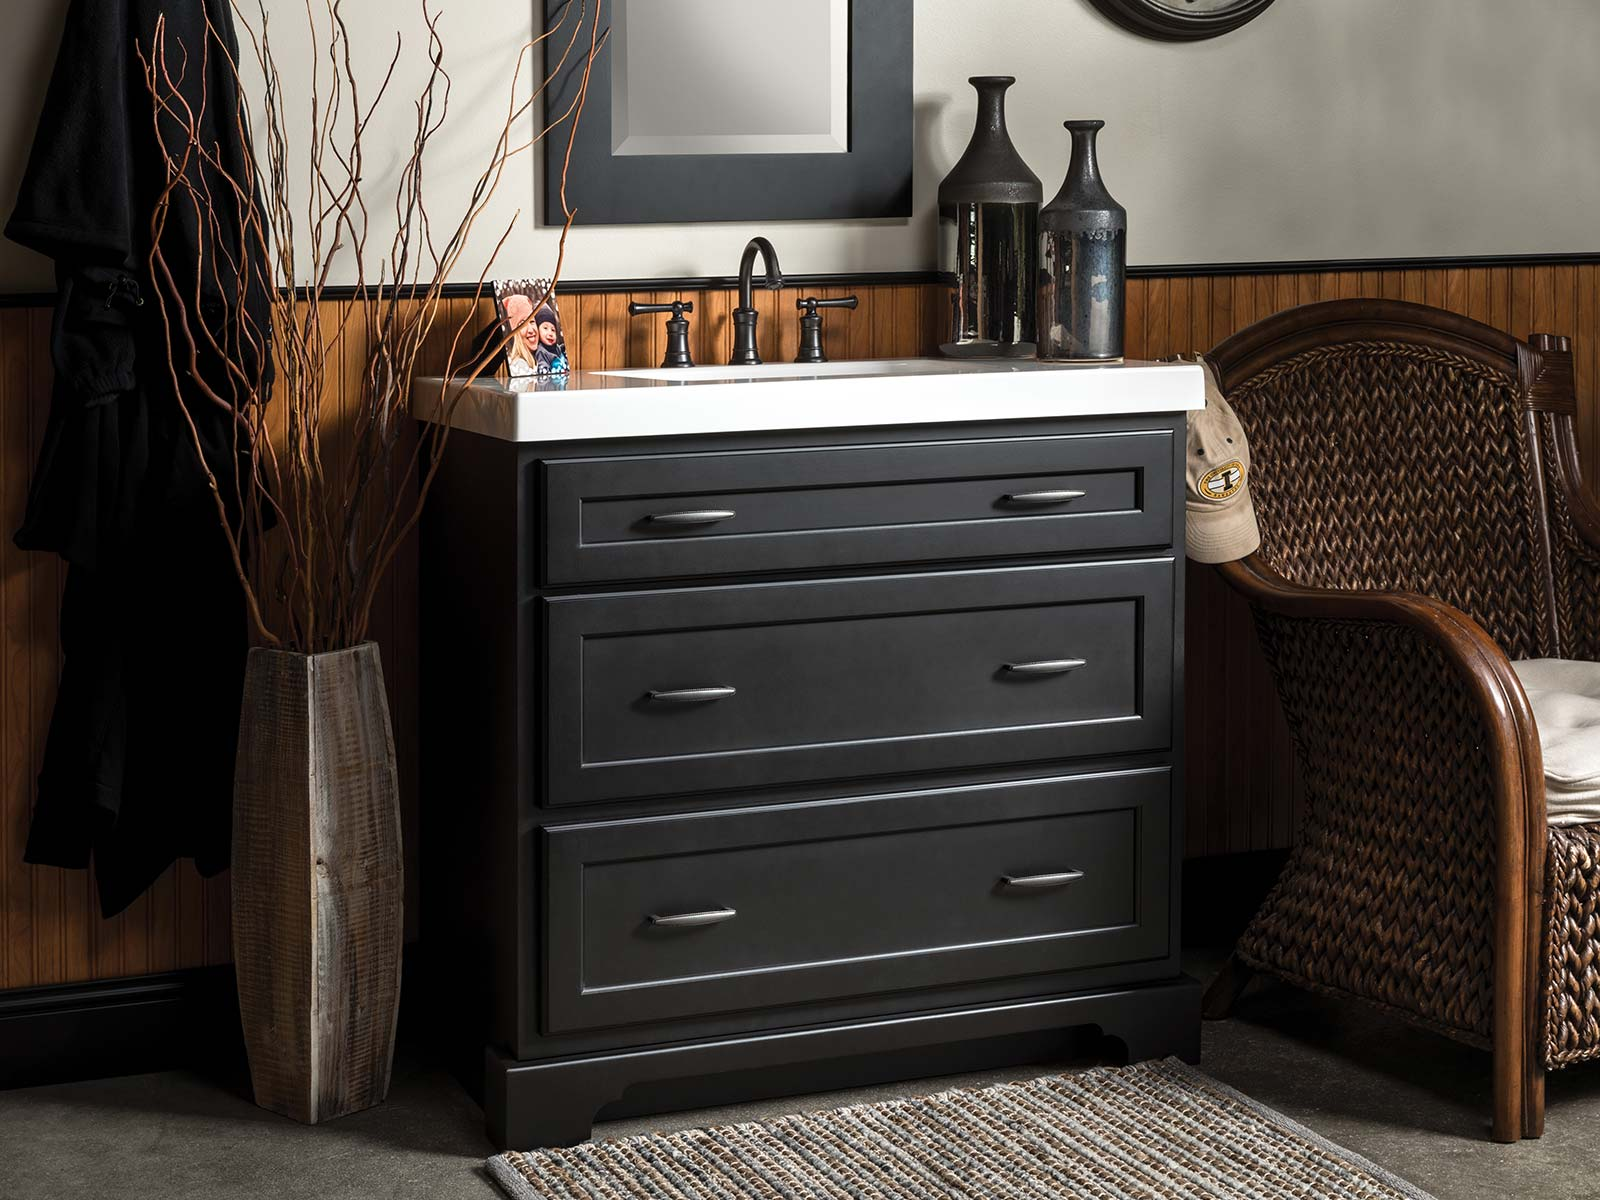 Bathroom Vanity And Cabinet Styles Bertch Cabinet Manufacturing